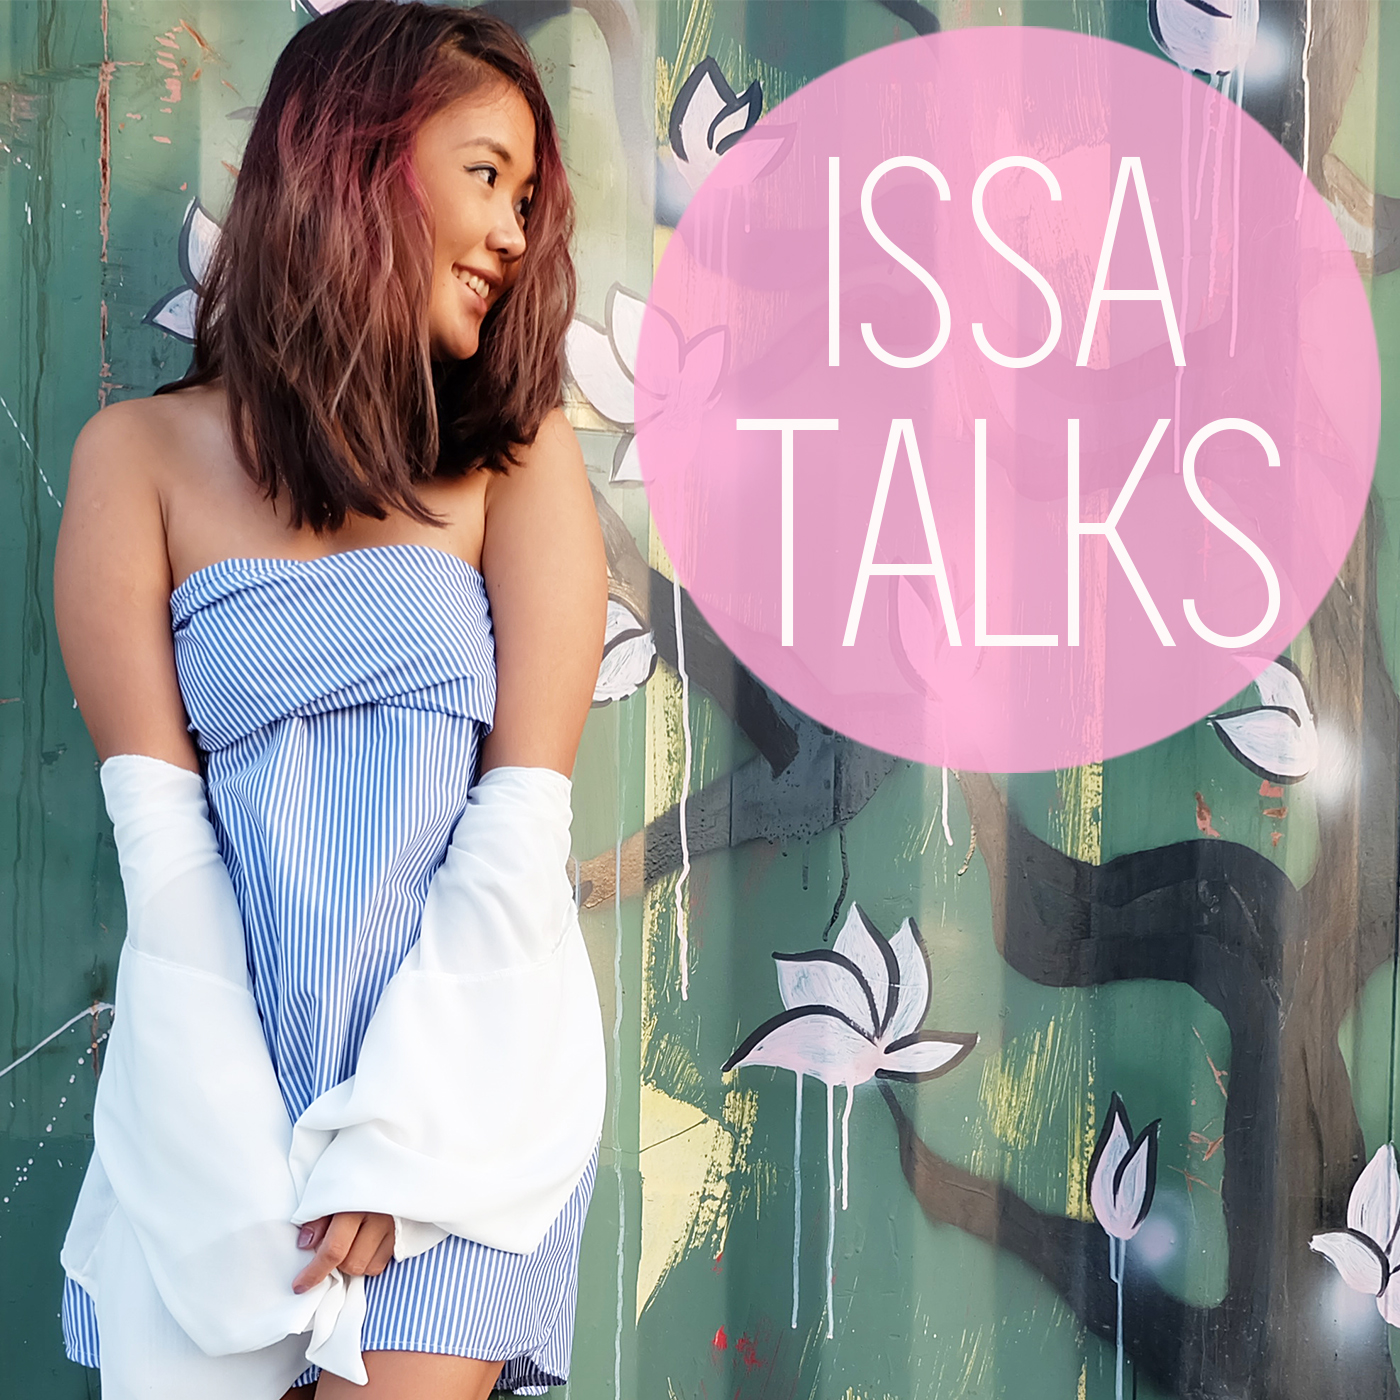 [PODCAST] IssaTalks About Photography with Australia Based Filipino Photographer, Malou Dingal